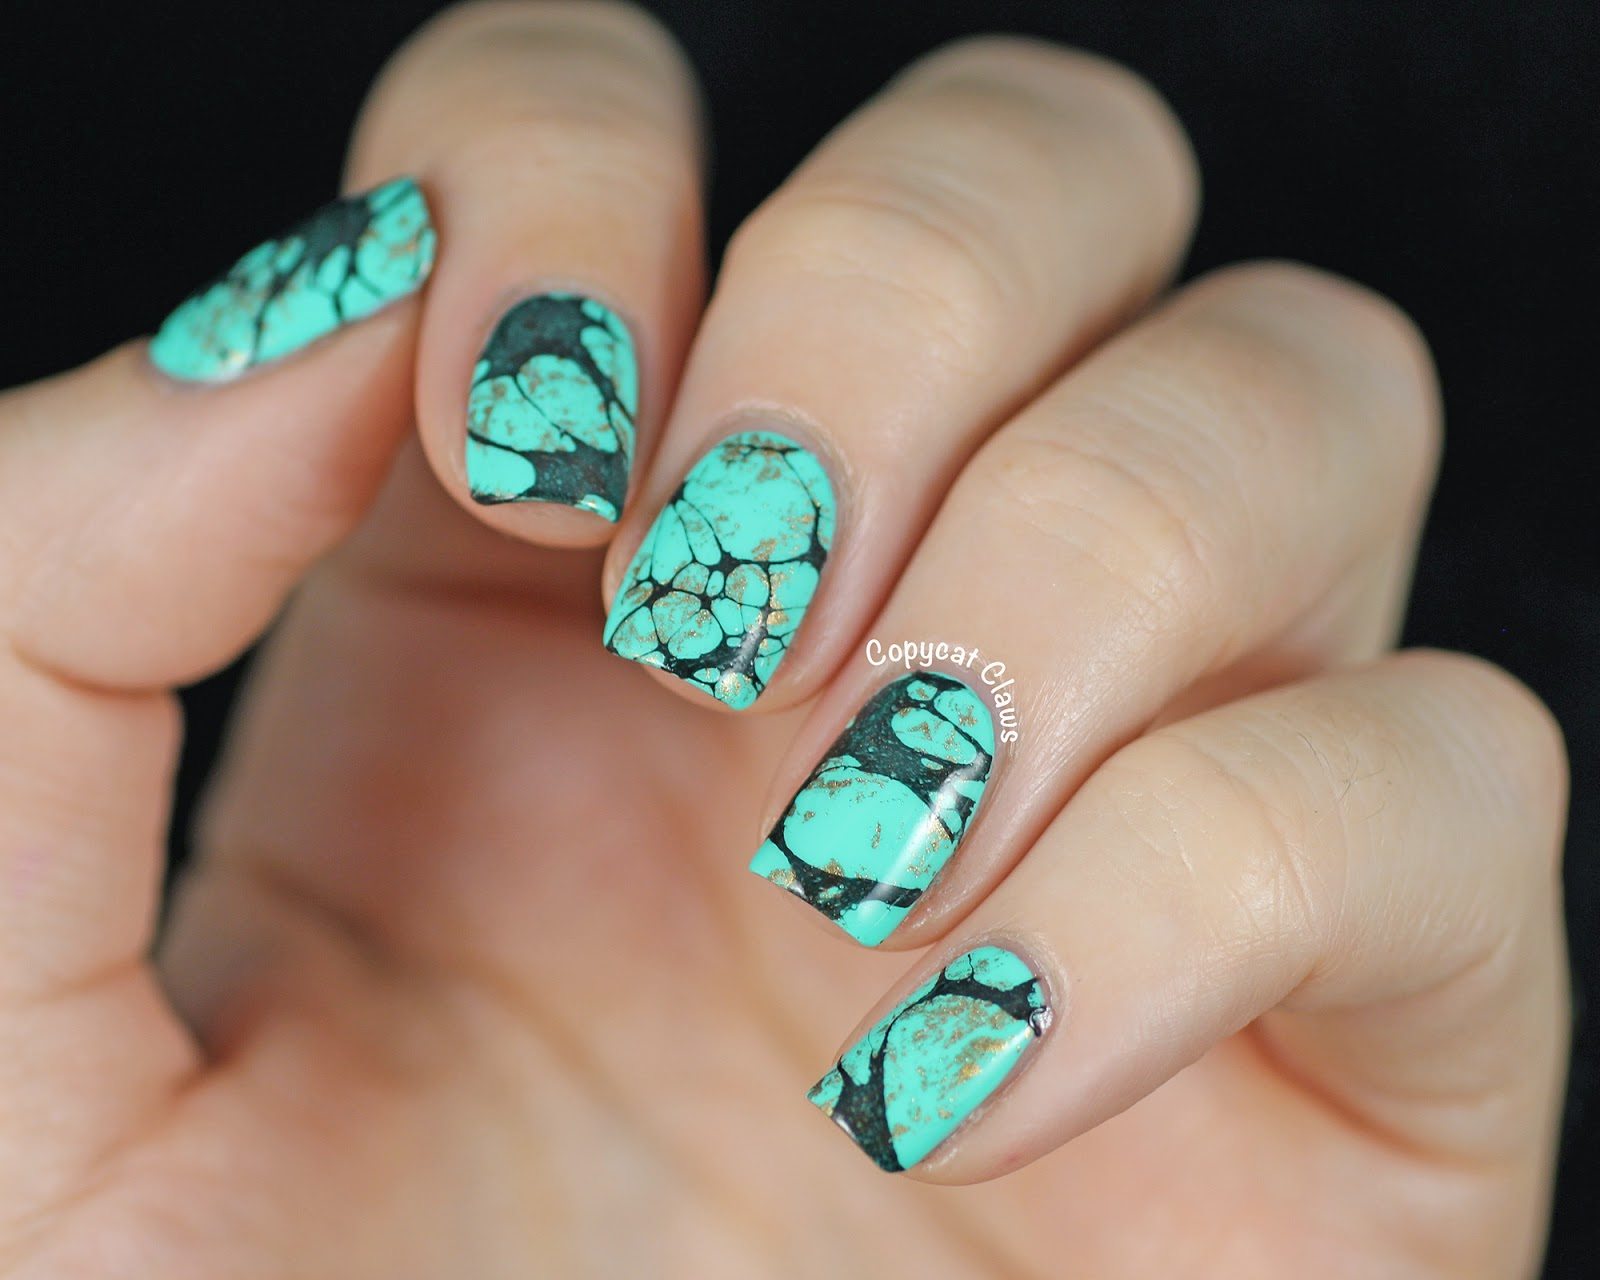 Copycat claws turquoise stone nail art china glaze too yacht to i used three coats of china glaze too yacht to handle plus hk girl top coat to start two coats is enough for coverage but as much as i love the colours prinsesfo Image collections